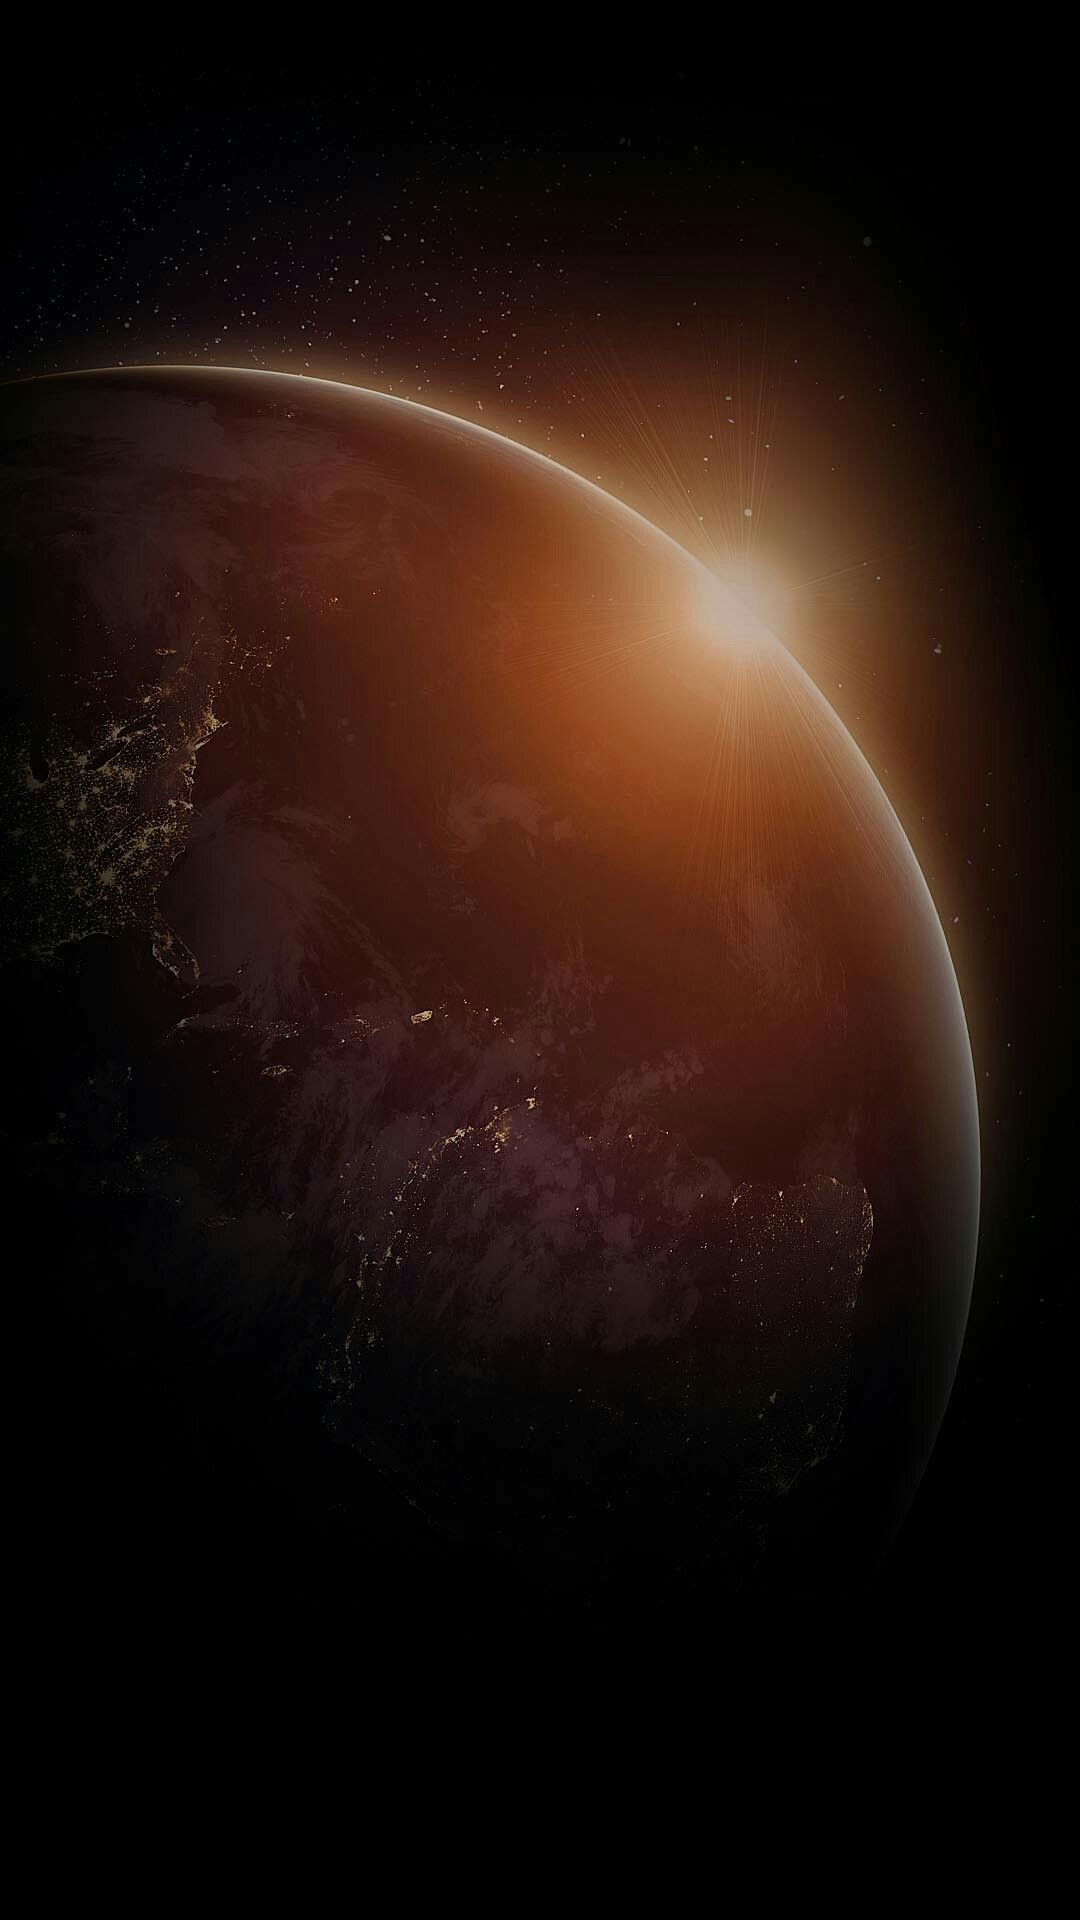 Iphone Backgrounds Wallpaper Wallpapers Dark Space Program Outer Samsung Galaxy Waves Nature